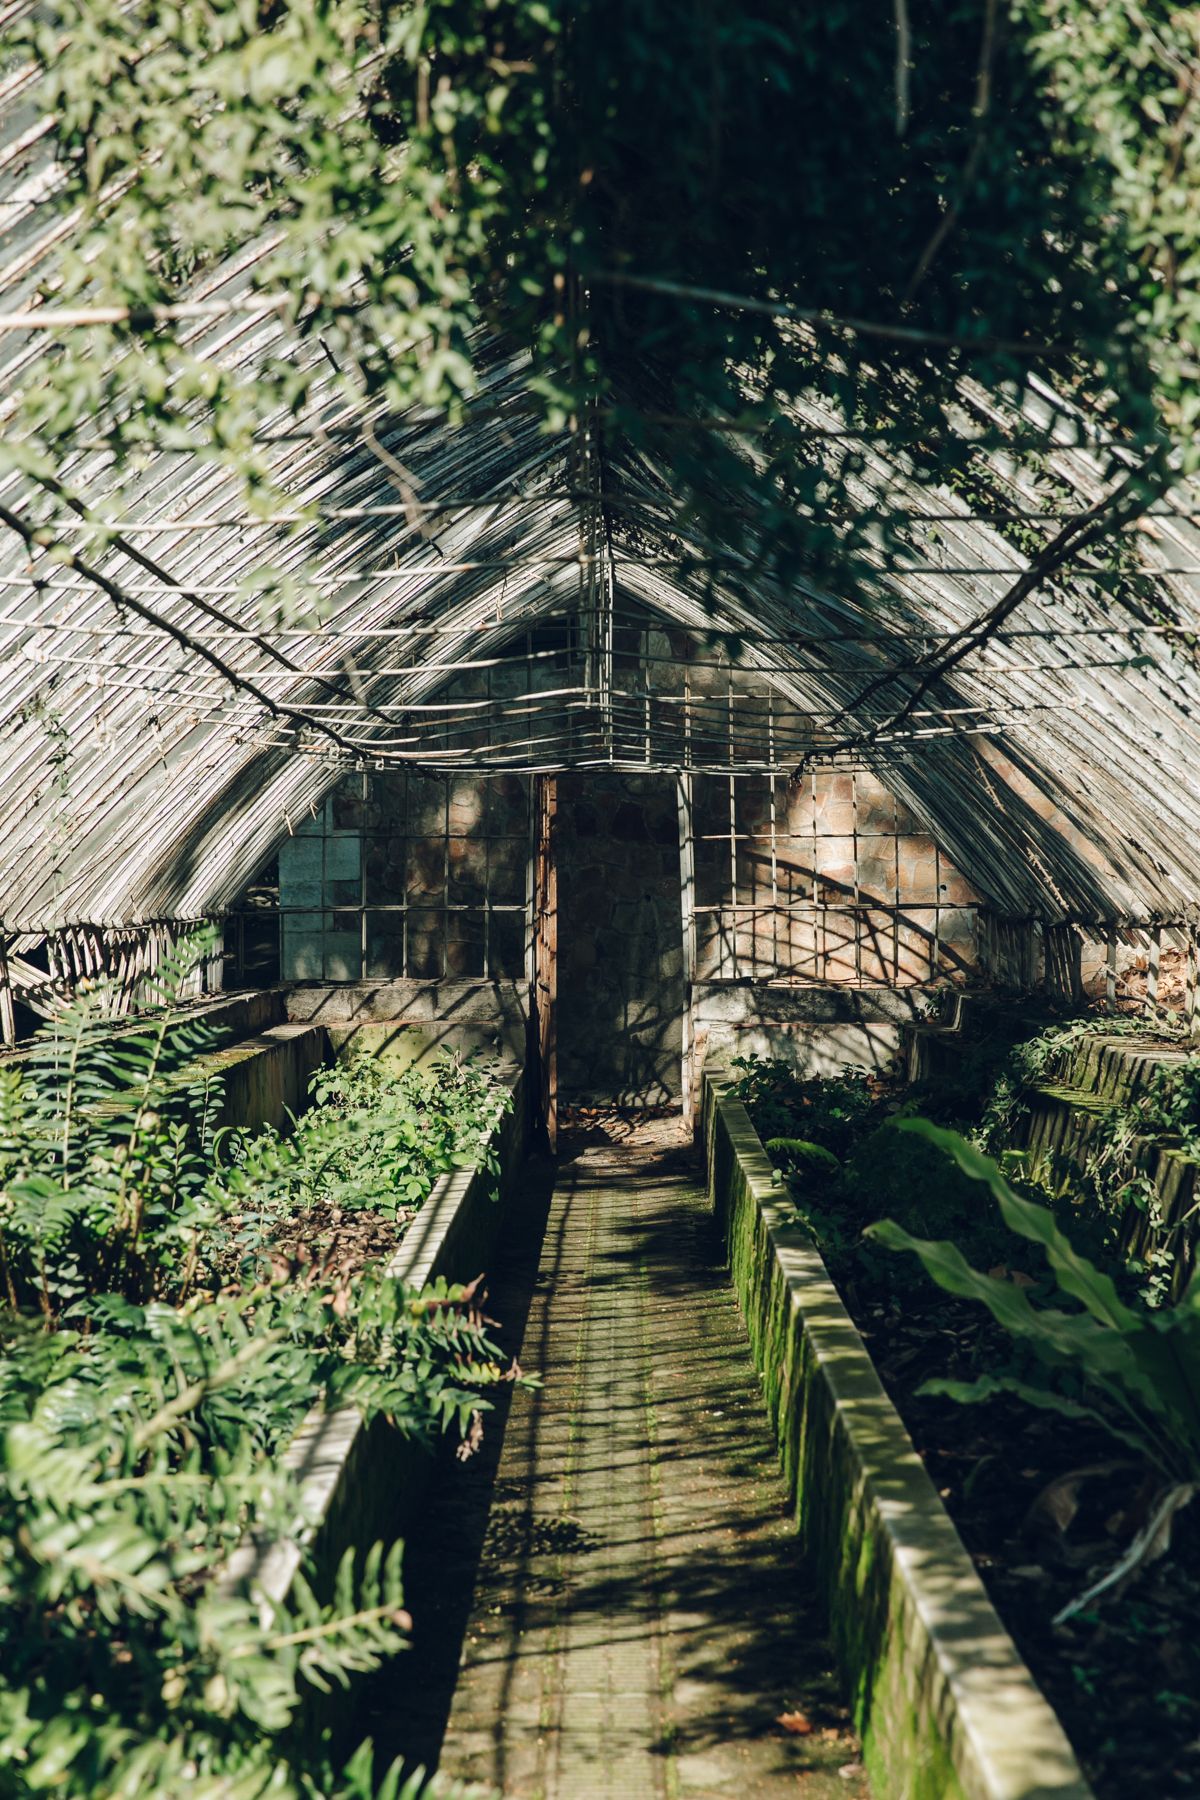 The dilapidated greenhouse in Malaga Botanical Gardens, Spain.